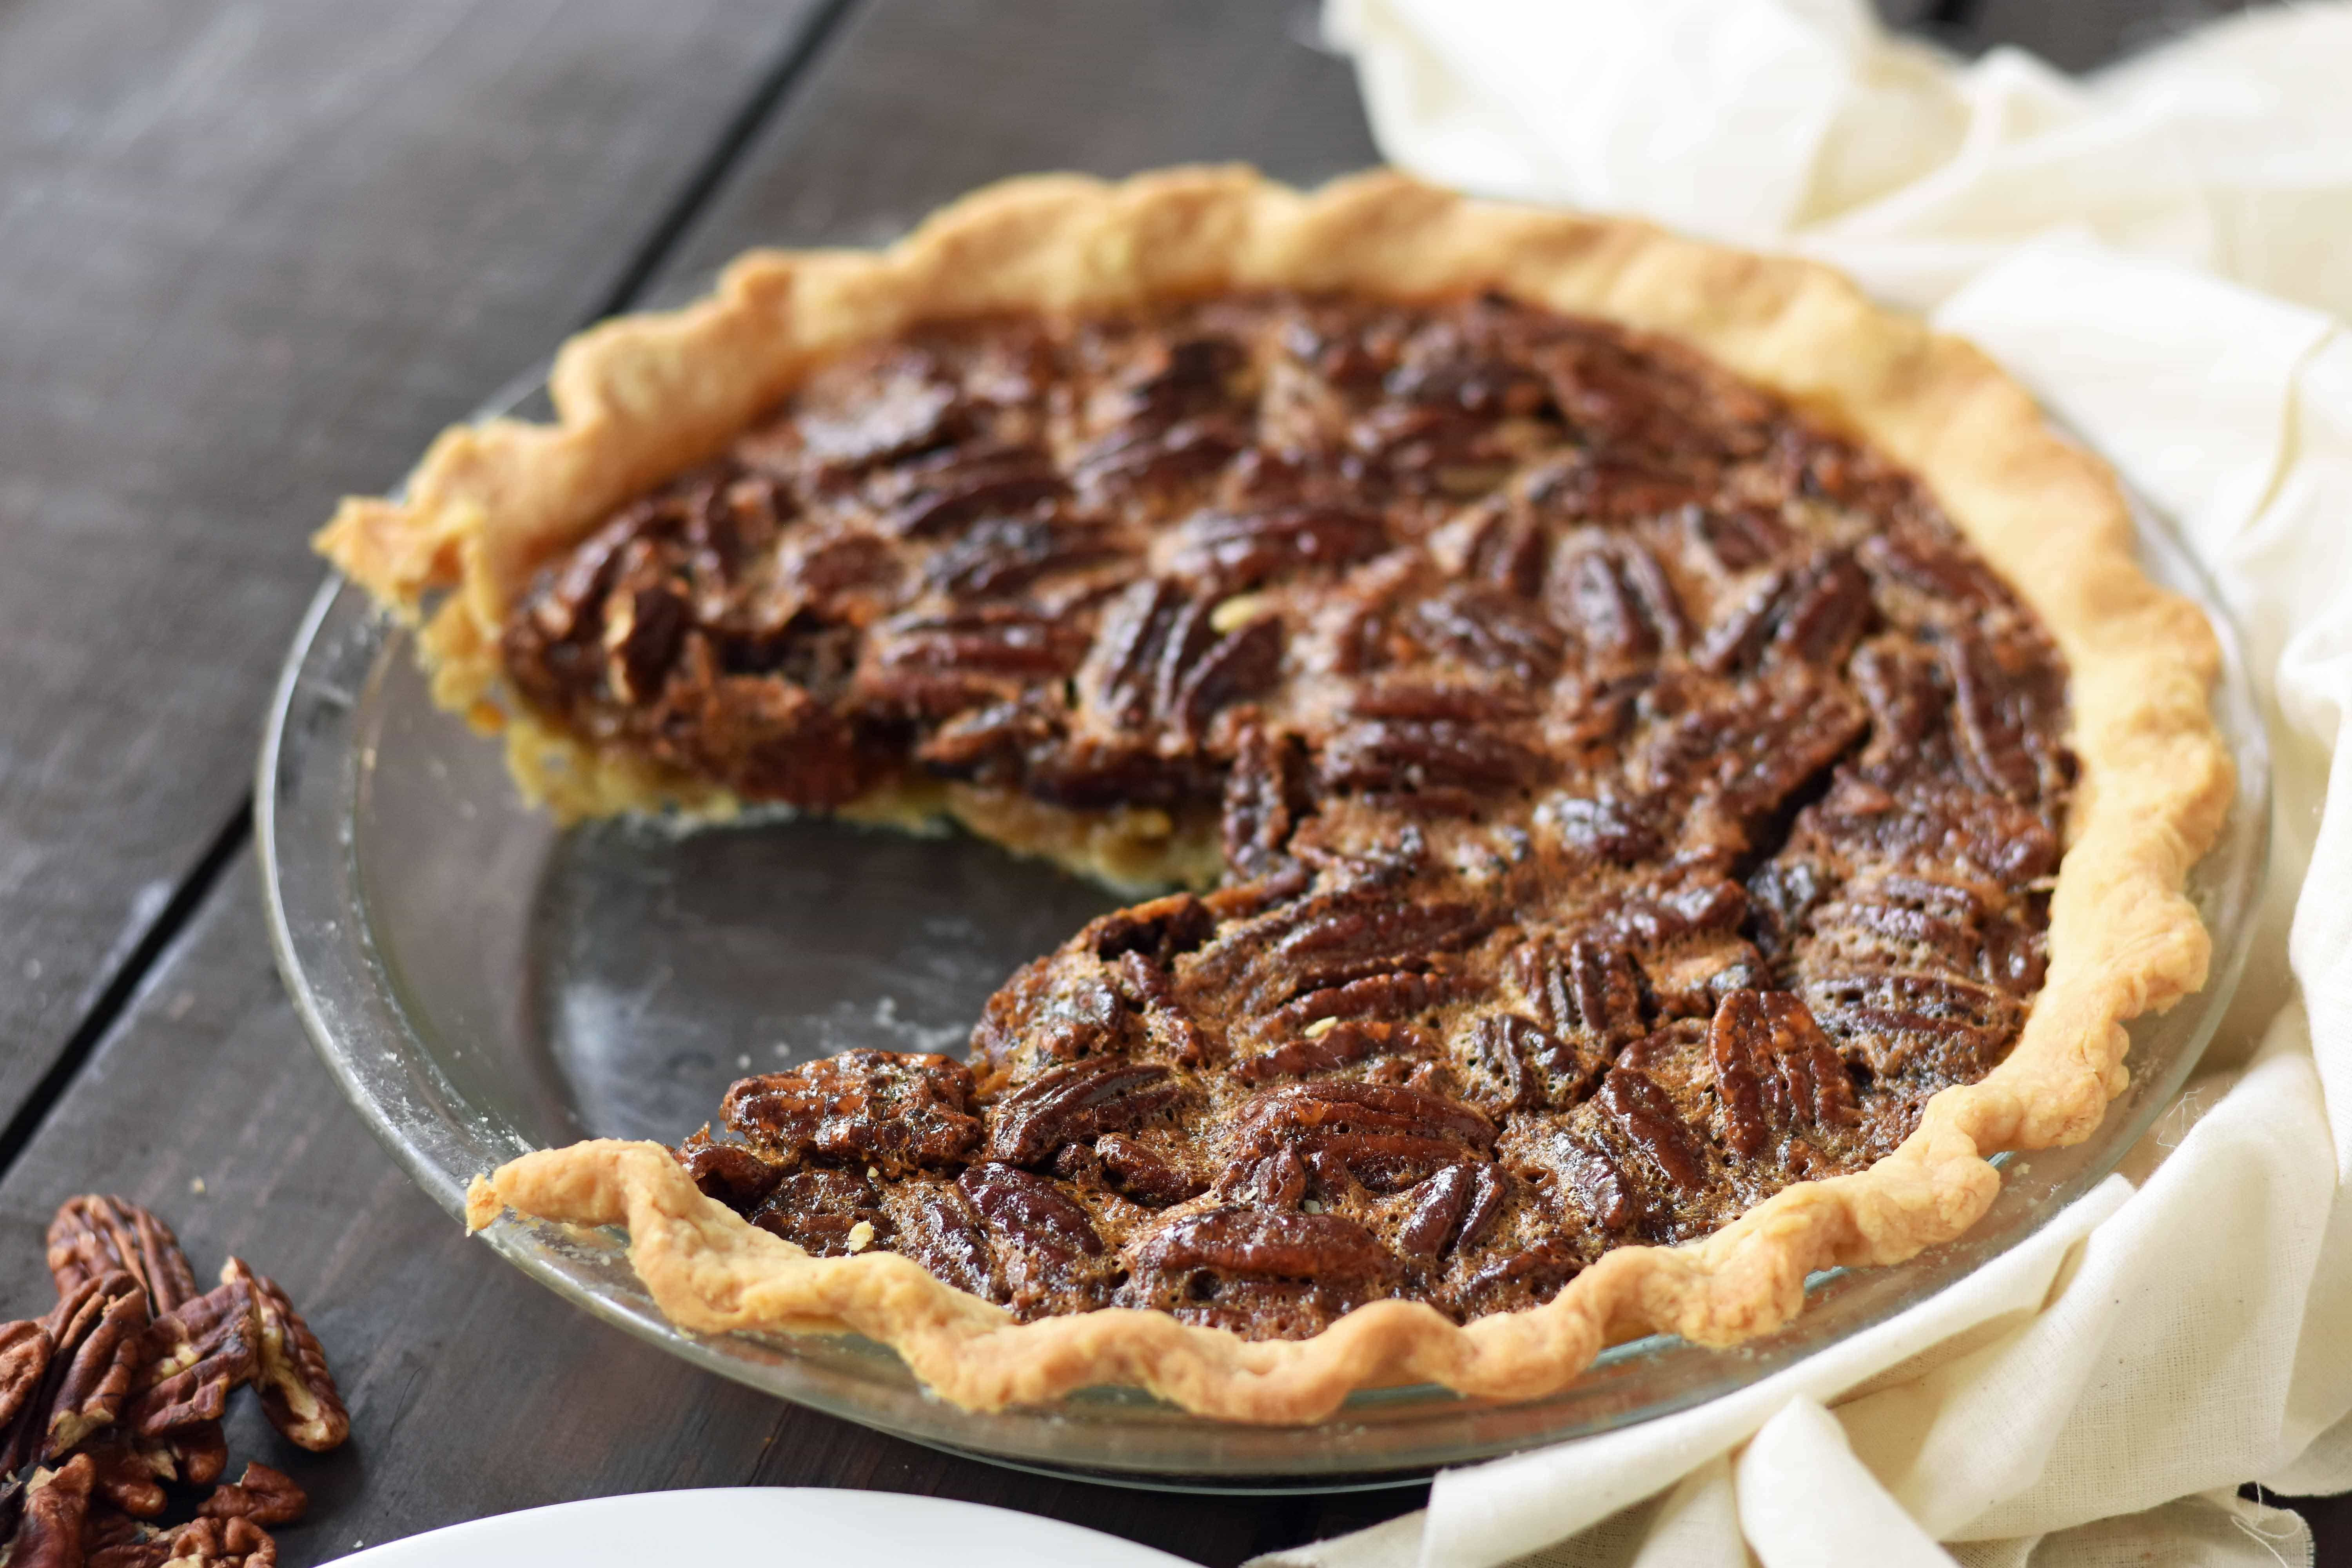 Old-Fashioned Pecan Pie made with a silky smooth brown sugar butter filling with crunchy pecans. Baked in a buttery flaky pie crust and topped with homemade whipped cream. A classic Southern Pecan Pie recipe. www.modernhoney.com